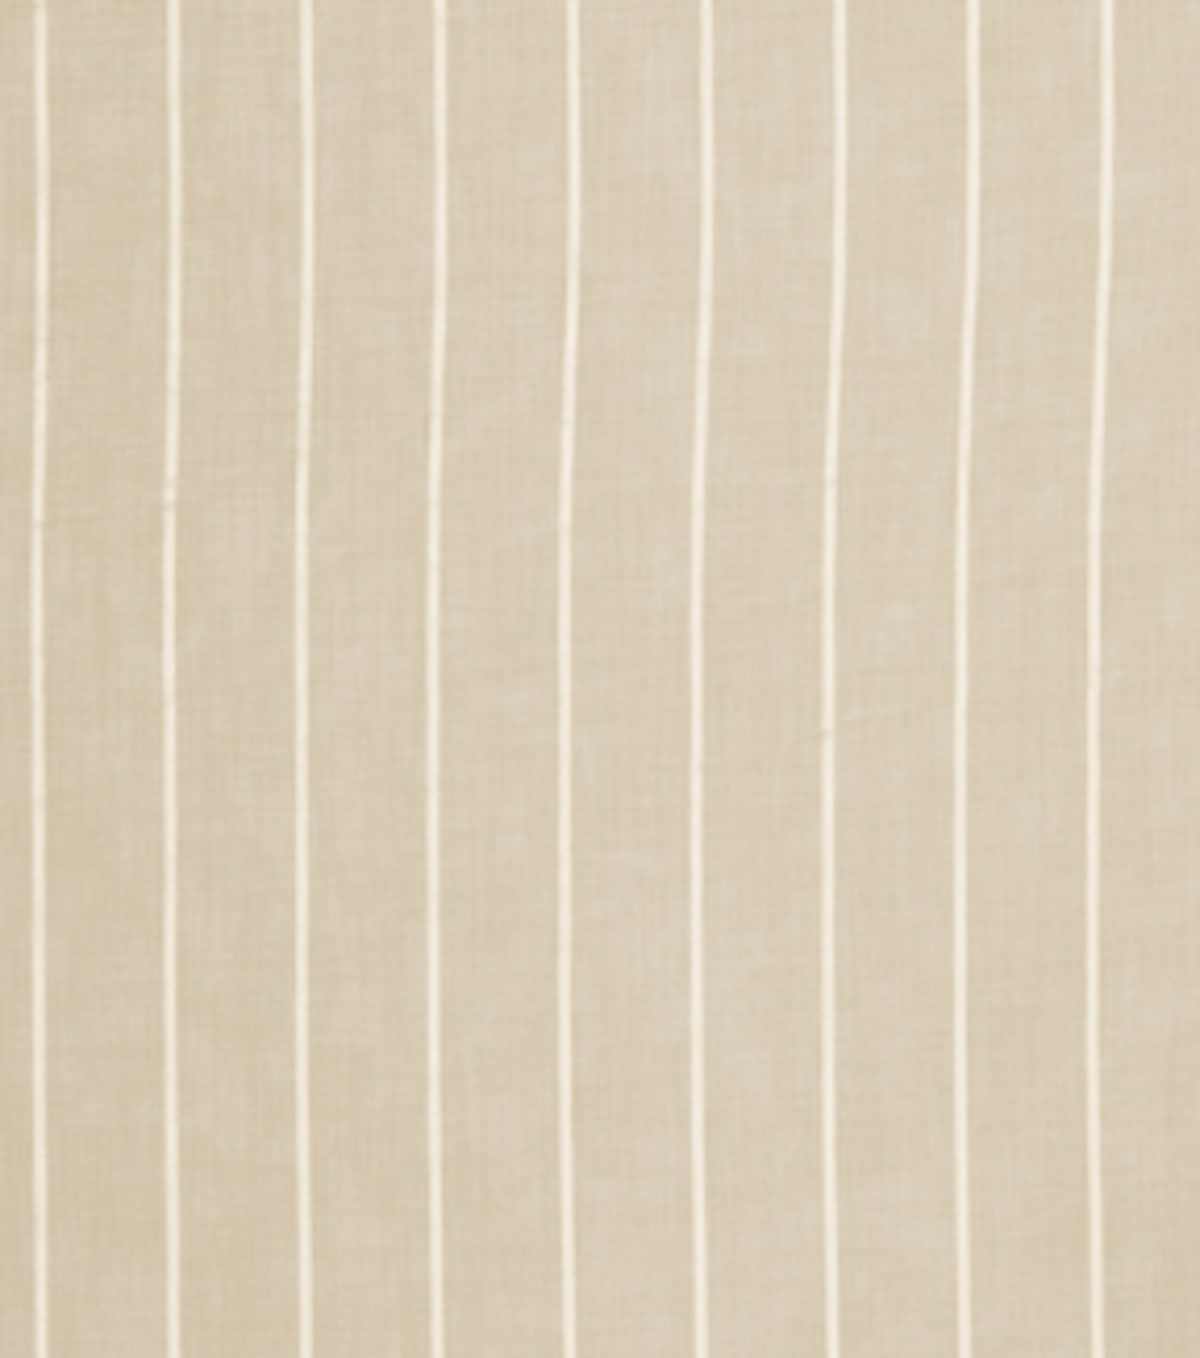 Home Decor 8\u0022x8\u0022 Fabric Swatch-Eaton Square Attain Stone